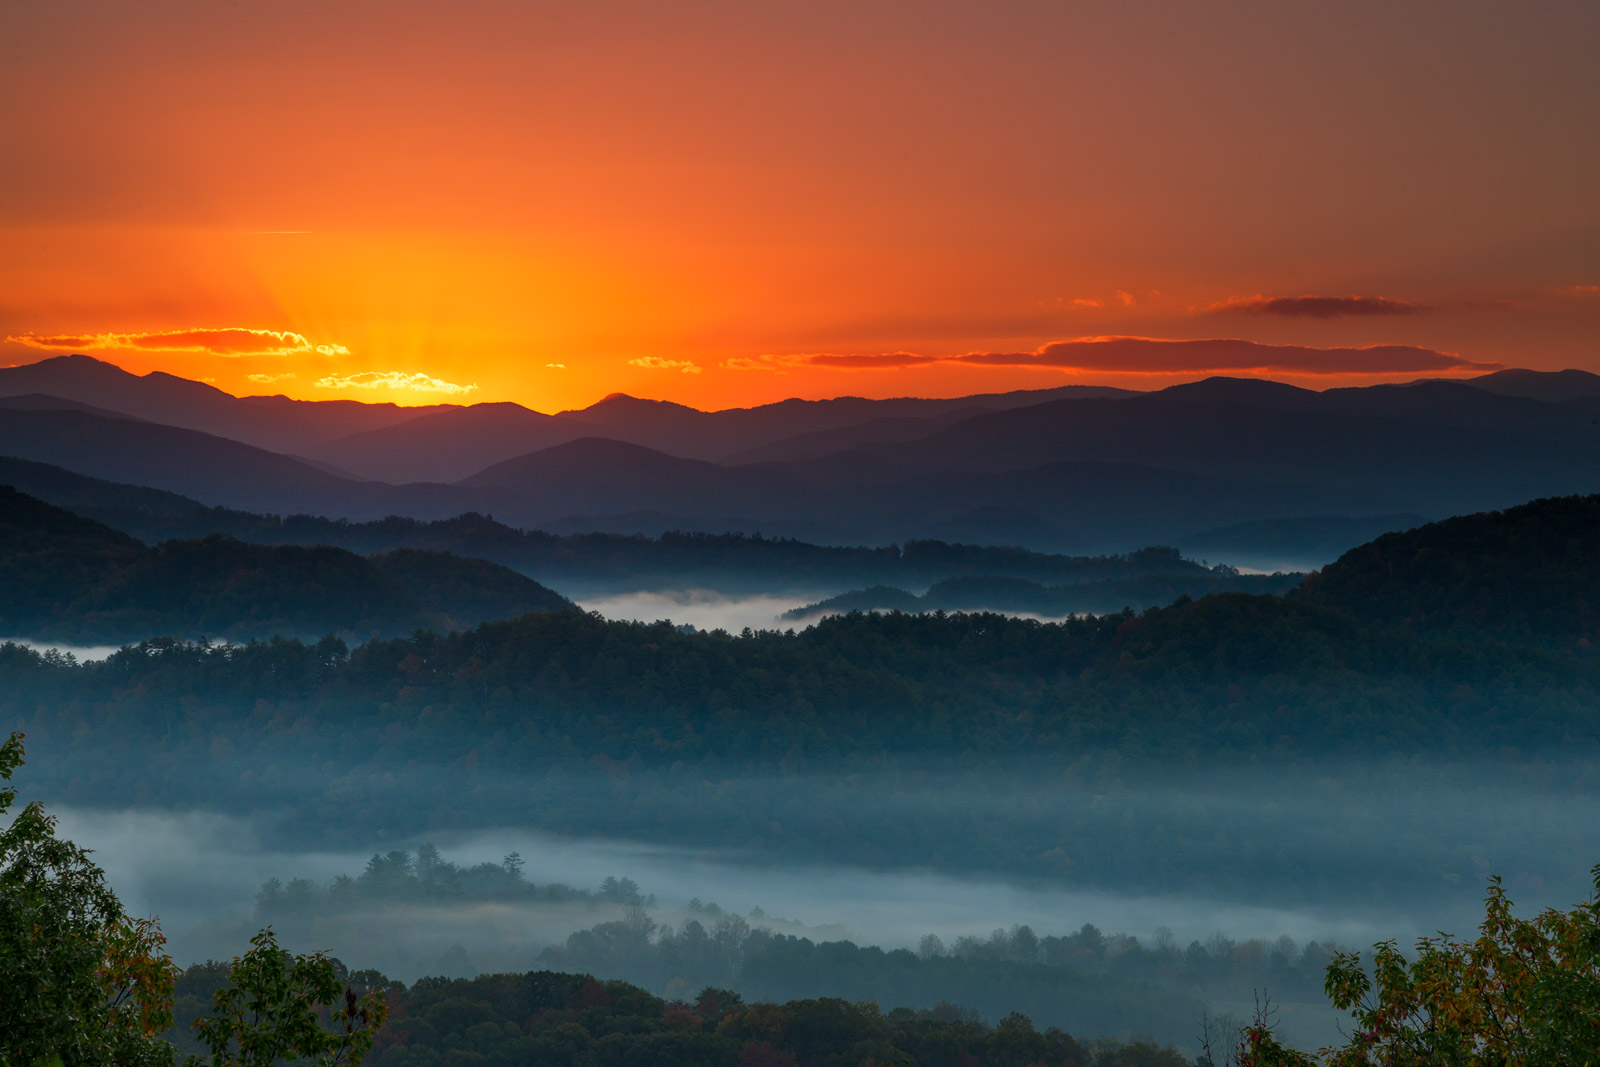 Tennessee, Smoky Mountains, Foothills Parkway, Mountain, limited edition, photograph, fine art, landscape, photo